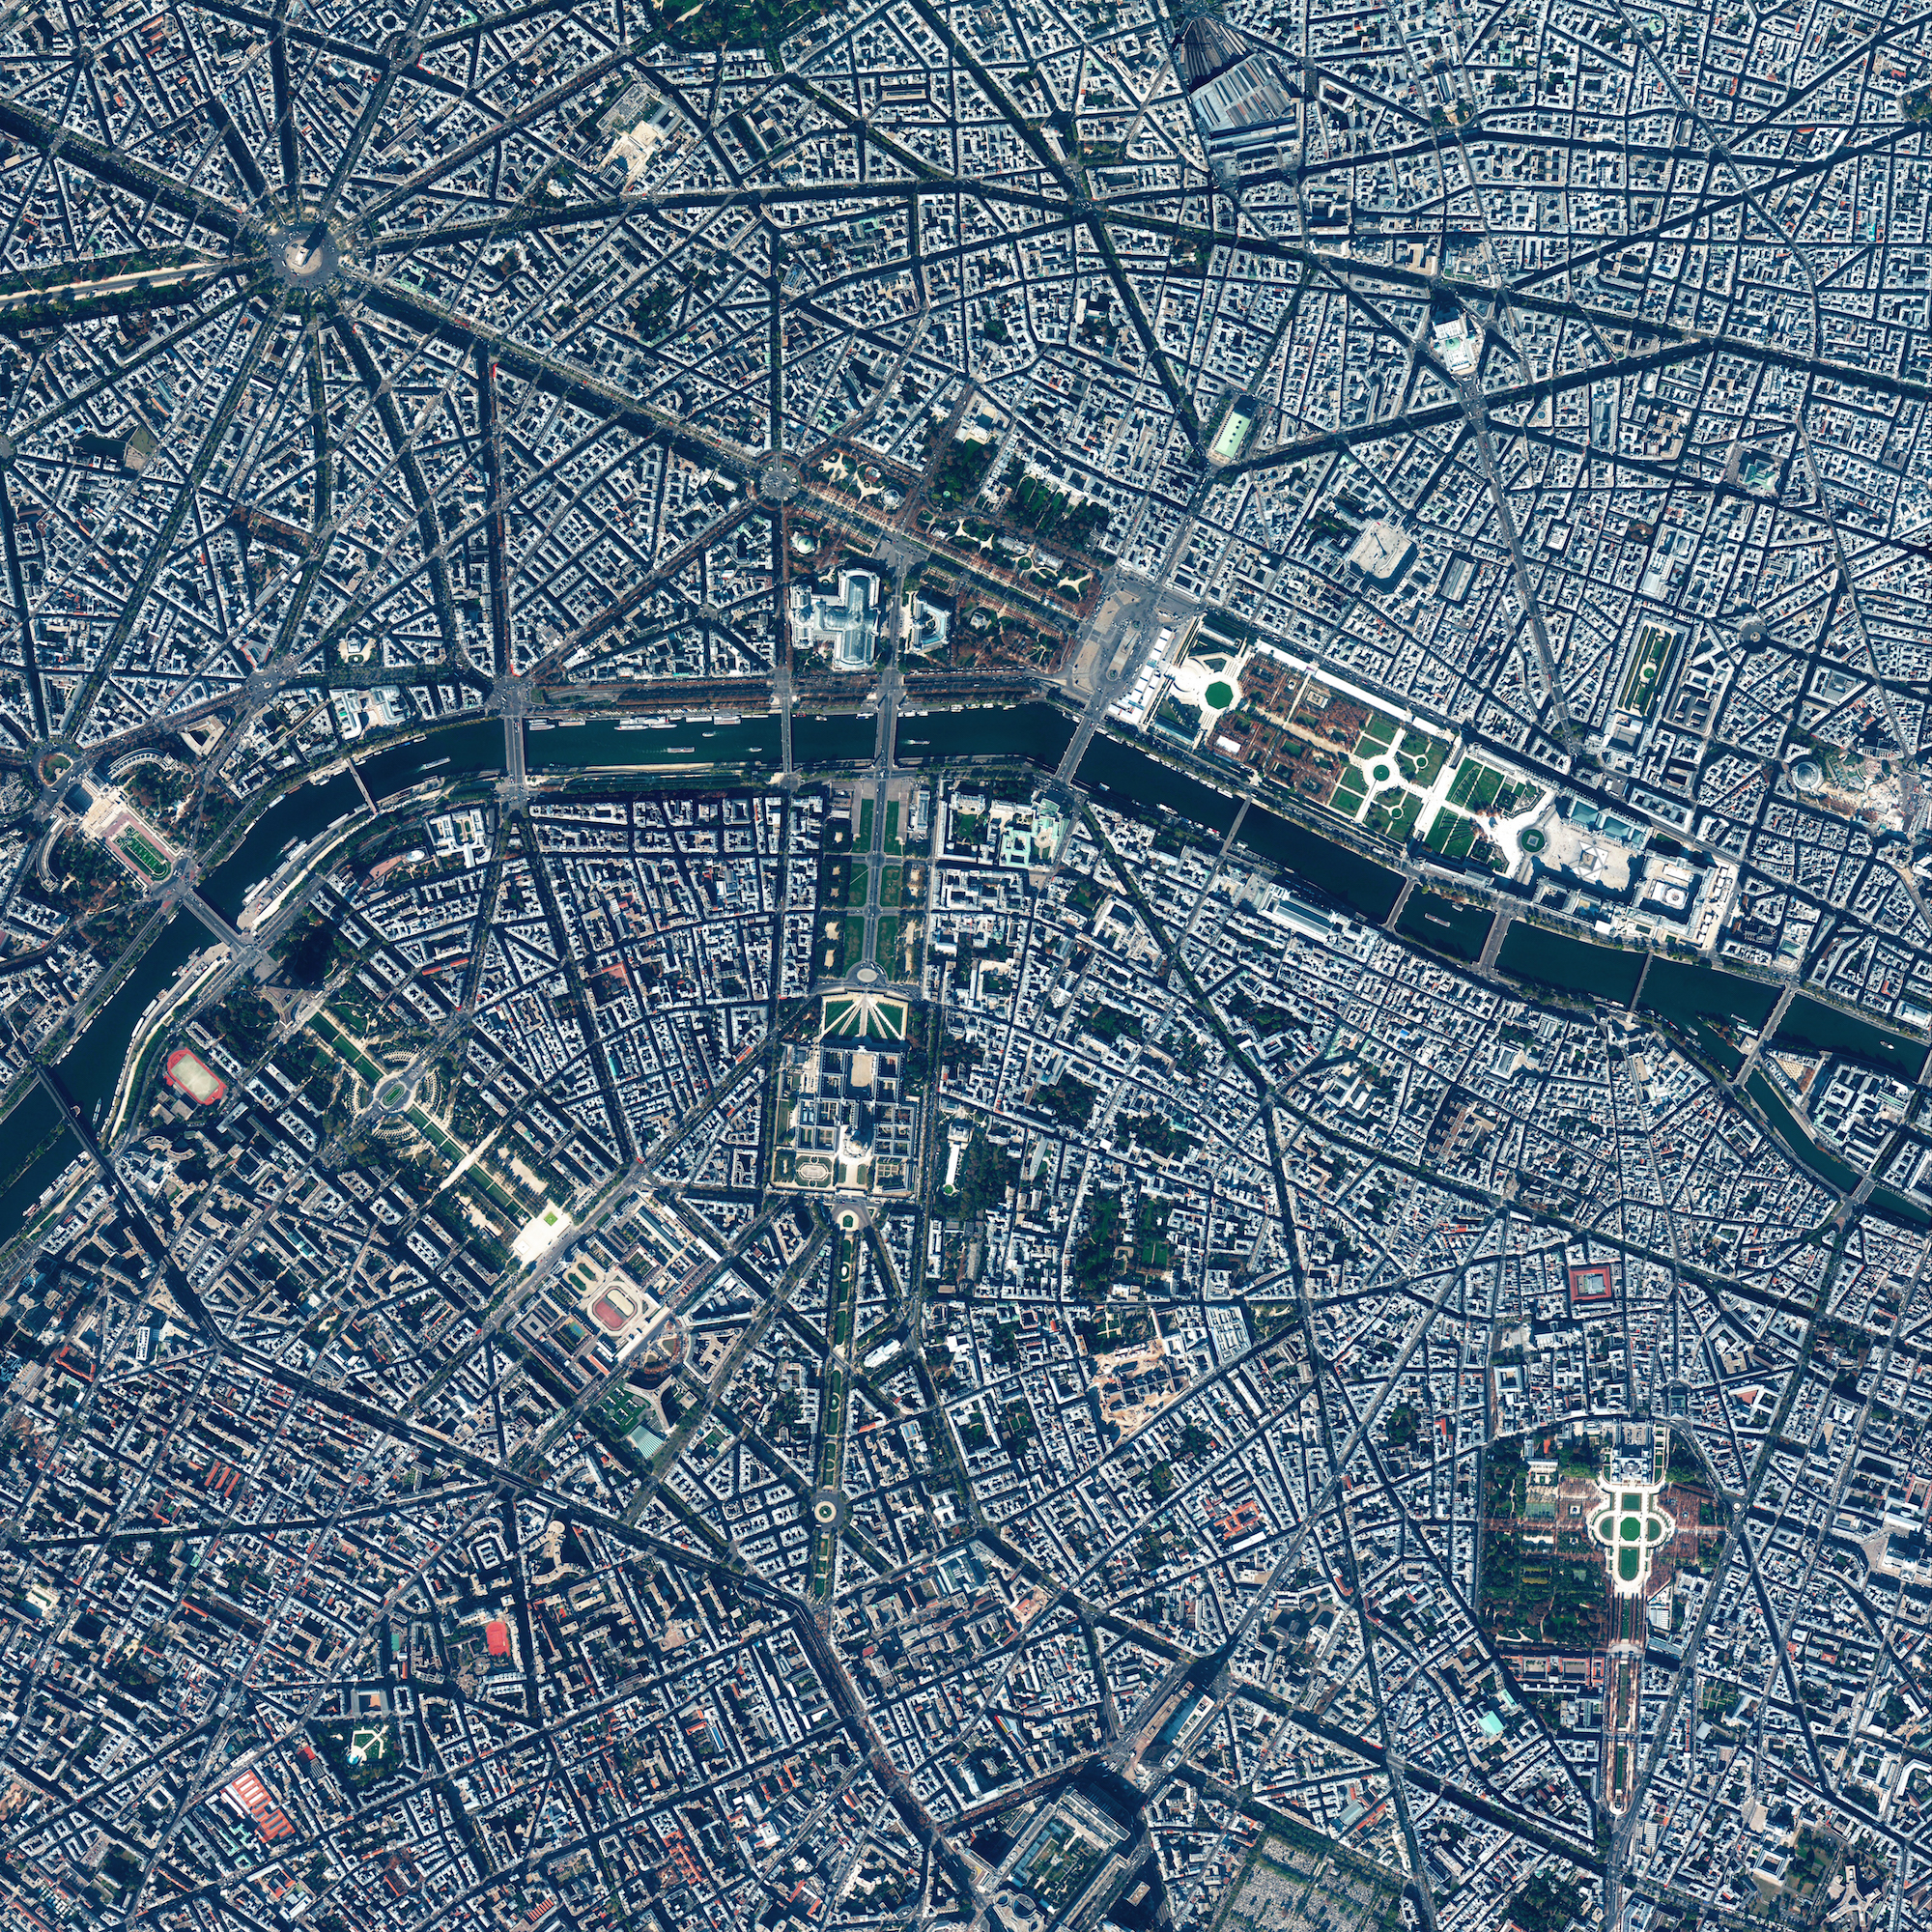 """11/14/2015   Paris   Paris, France  48.868342488°, 2.324473017°    My thoughts are with the people of Paris today. The purpose of this project from its very beginning was to inspire new perspectives that would help us better understand why we need to take care of our planet, but also take care of each other. The massacre that took place yesterday was tragic and gruesome; President Obama rightfully called it """"an attack on all of humanity and the universal values we share."""" I am in no position to say how we can stop the violence that plagues our world, but I am optimistic that by coming together after such a tragedy, we move closer to realizing we are indeed one species that must see beyond the borders, cultures, beliefs, religions, ethnicities, and whatever else currently separates us so that we can work together to create a safer, healthier planet."""